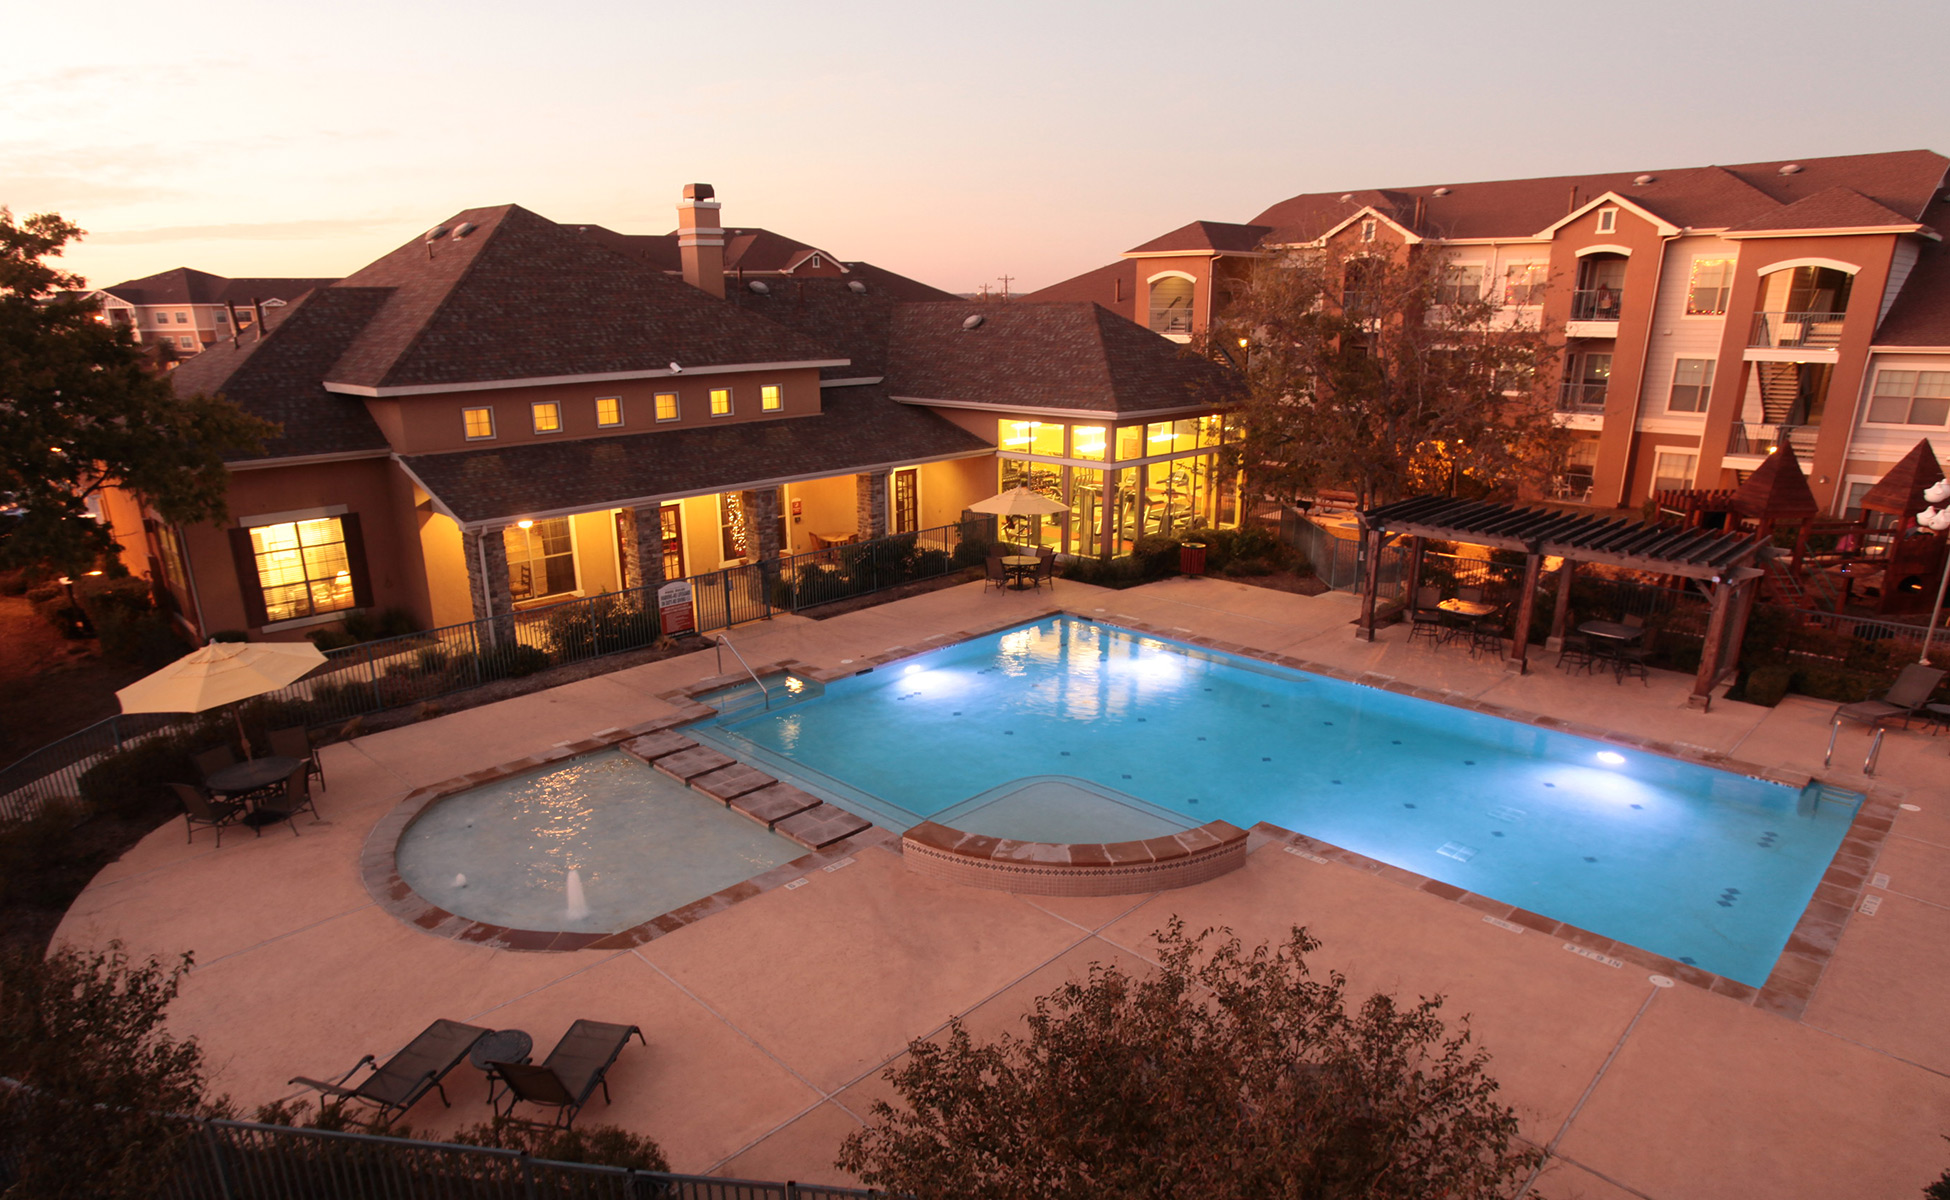 Cypress Creek Apartment Homes - Pool Evening